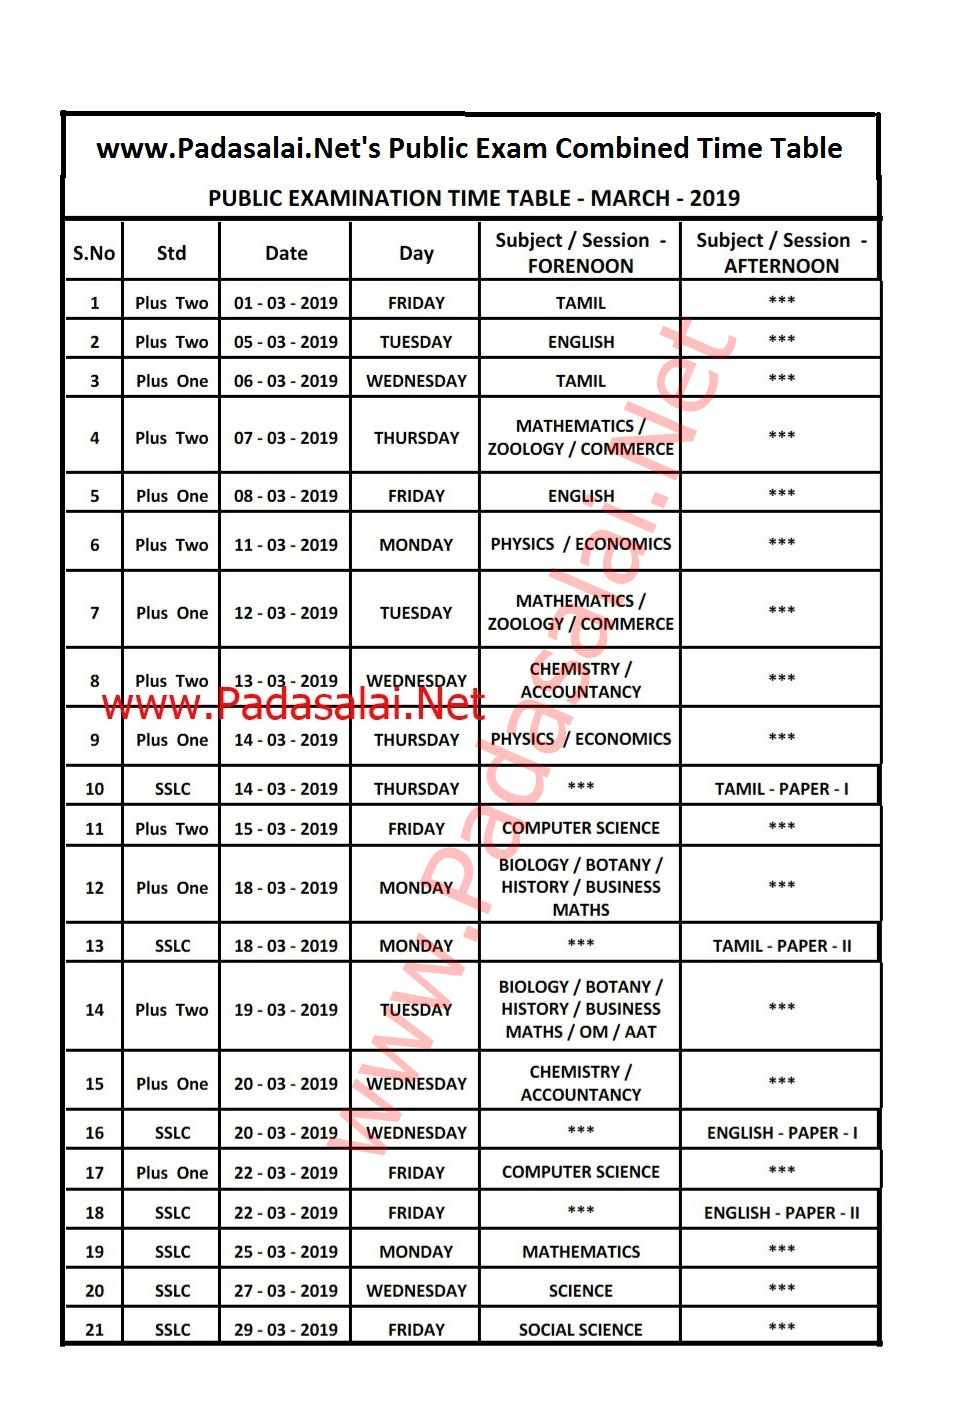 10th, 11th, 12th Public Exam March 2019 - Combined Time Table